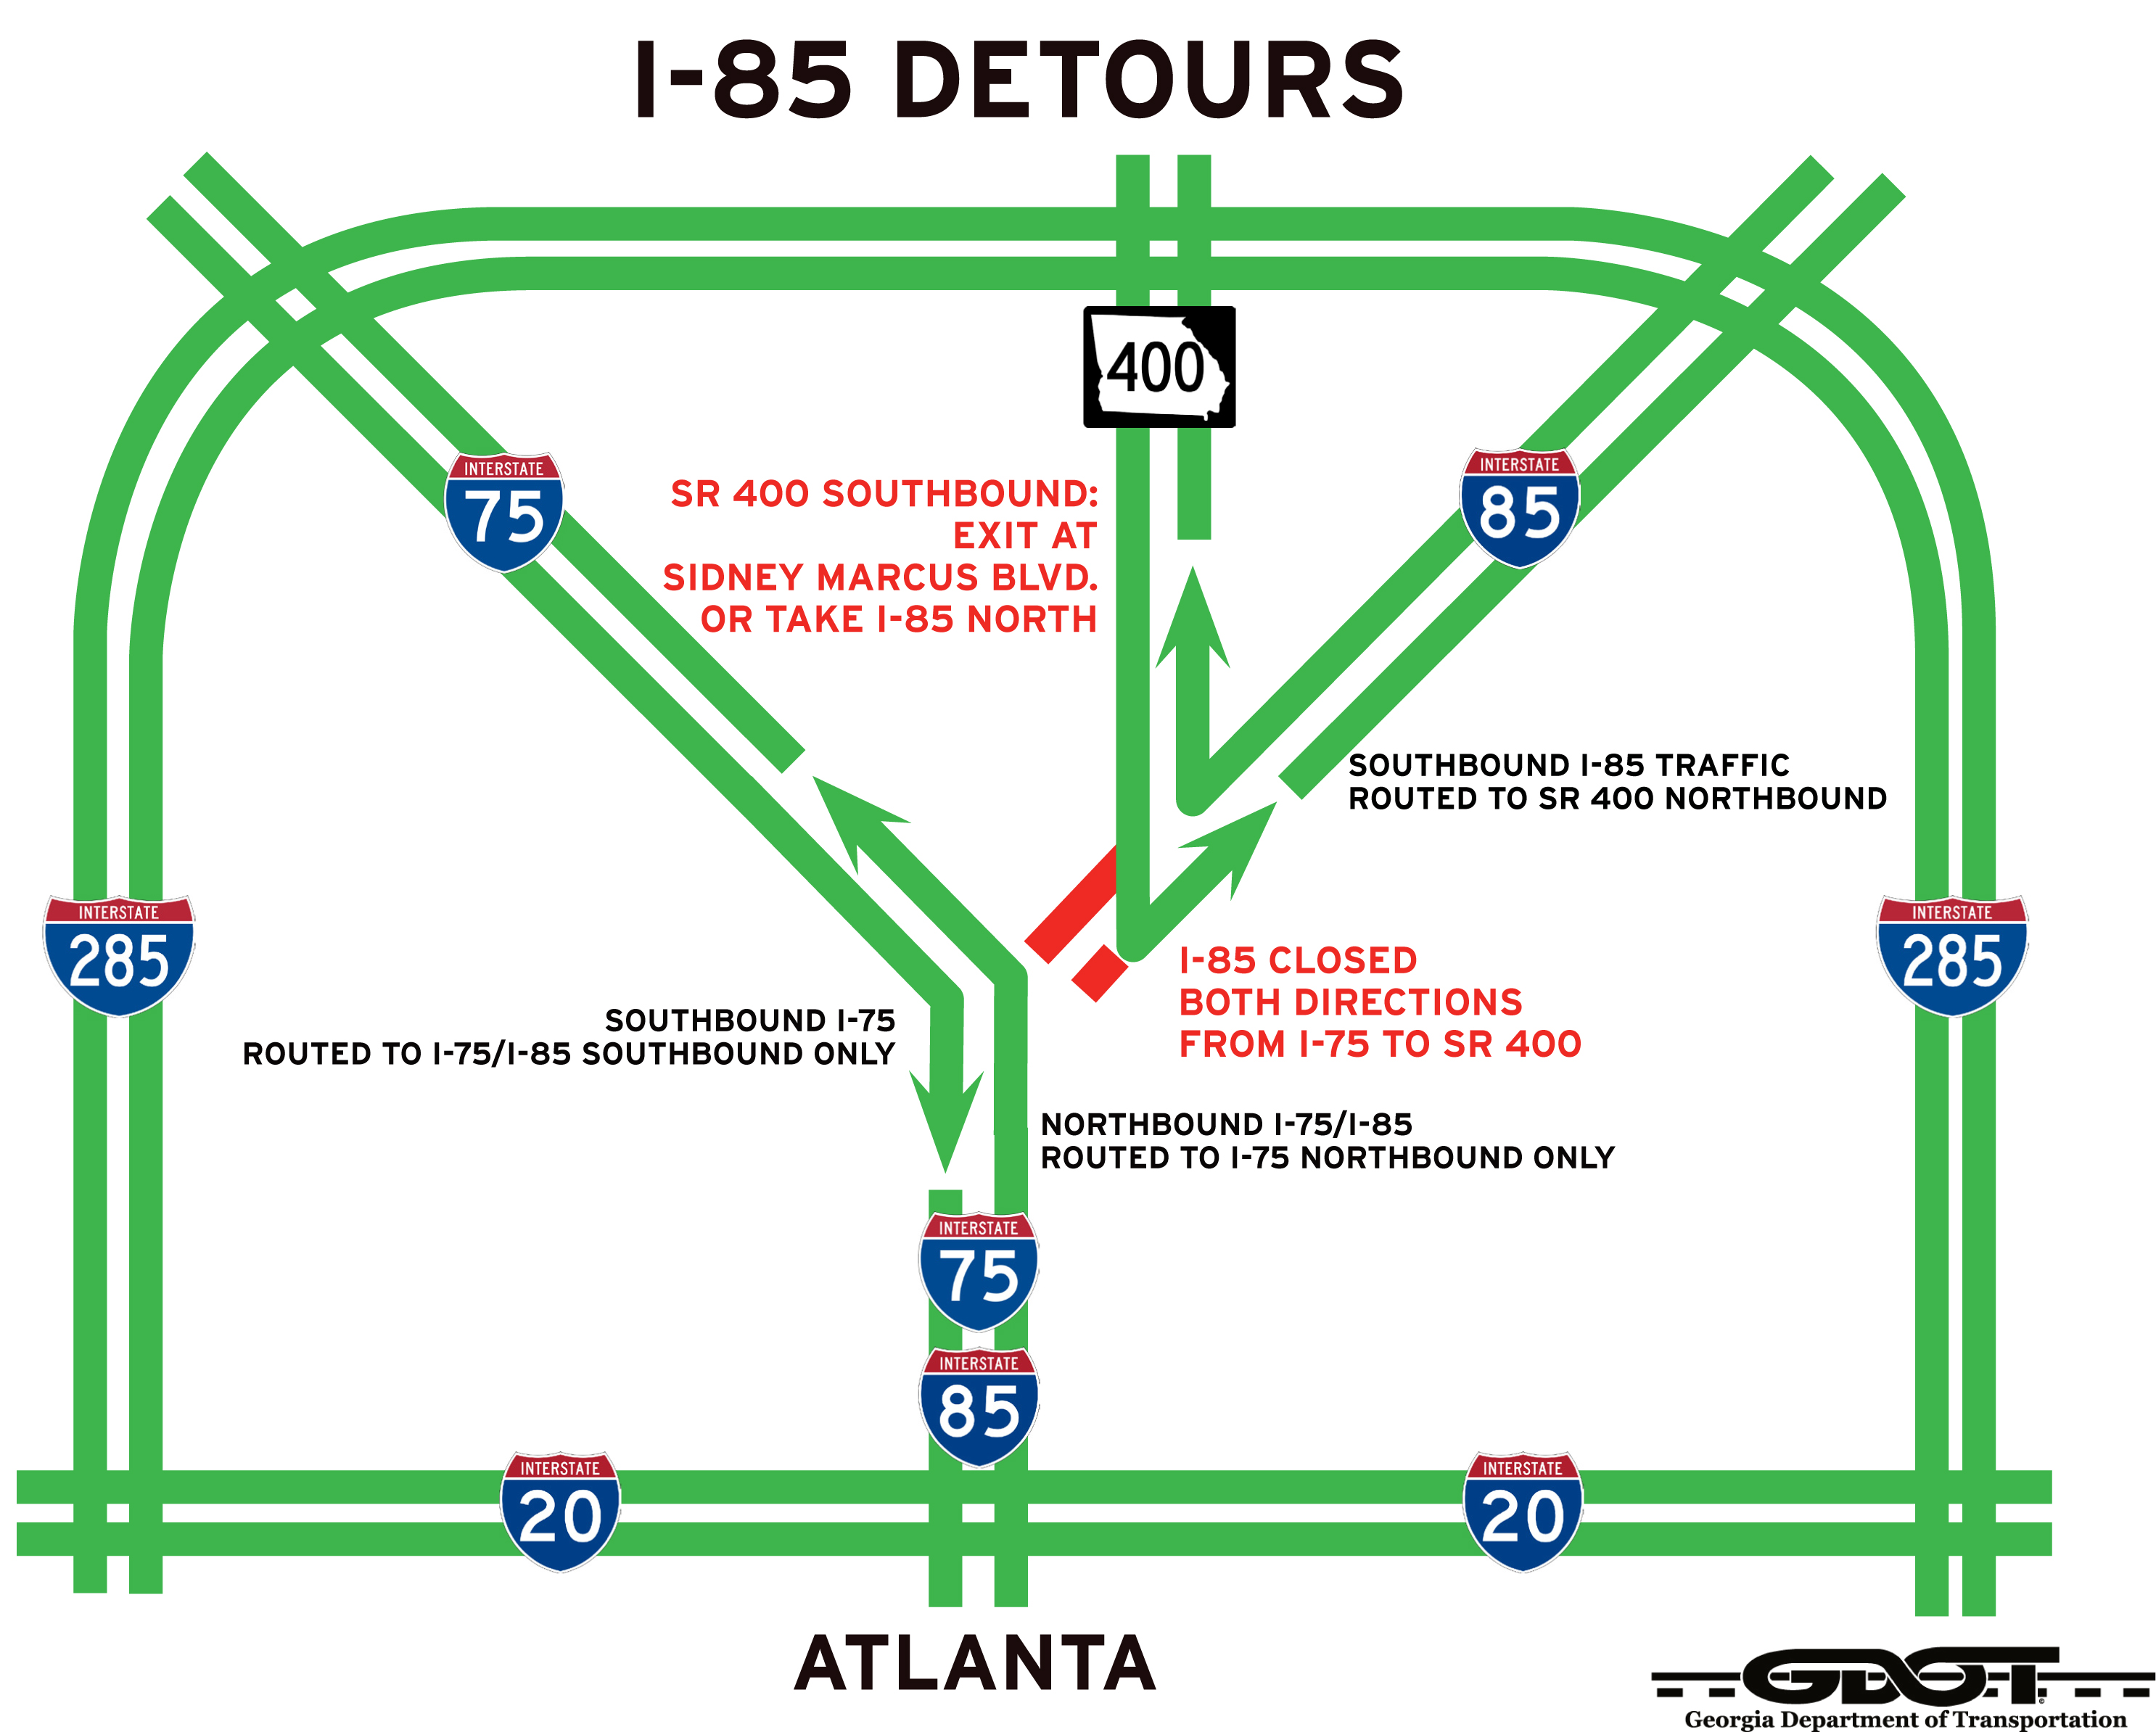 Map of detours for Interstate 85 in Atlanta